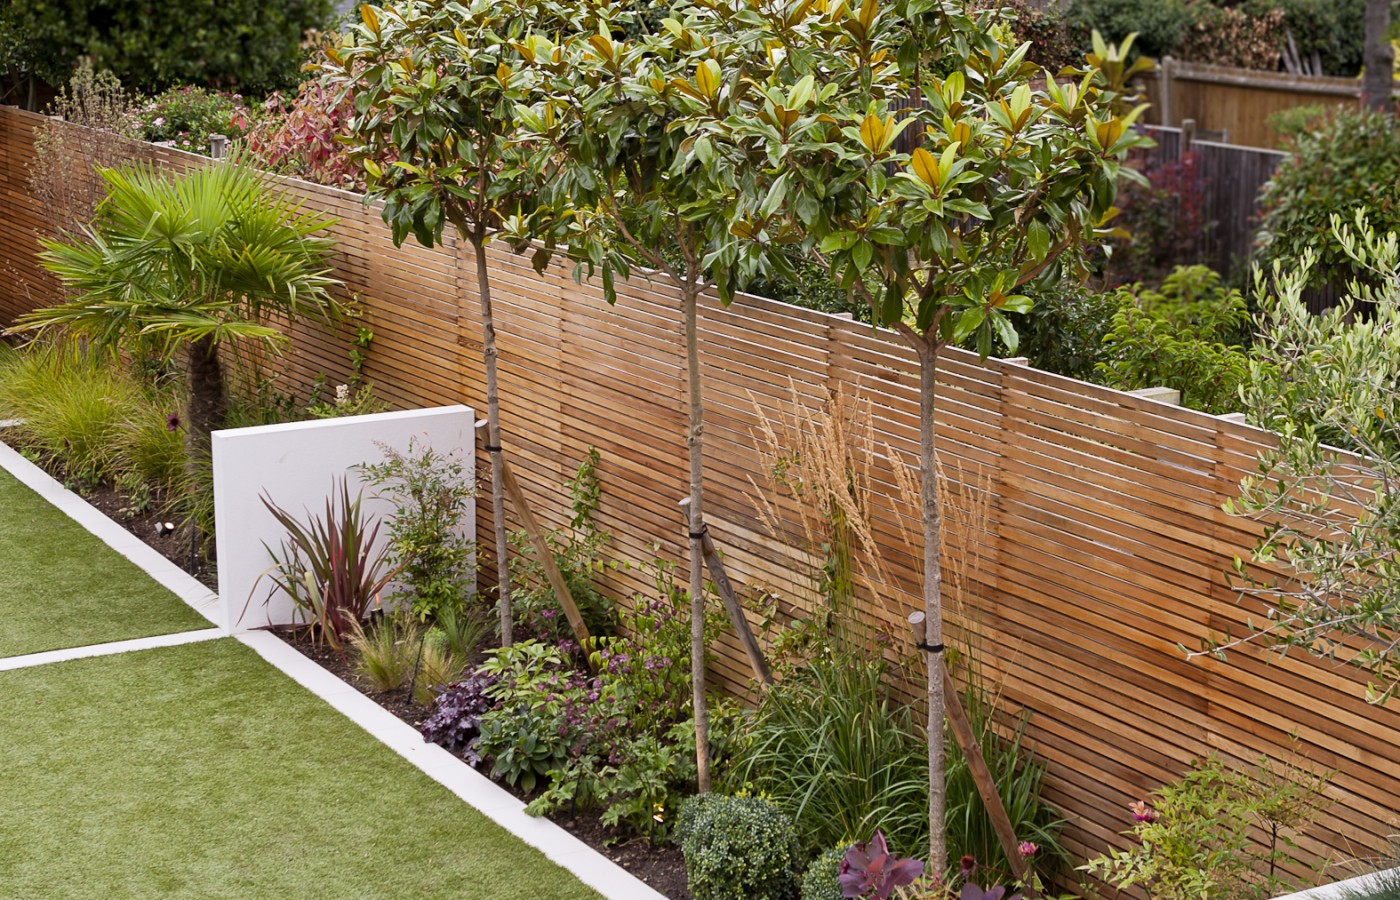 long thin garden design from the patio showing wooden seating and family planting in contained flowerbeds edging the lawn - Garden Design Long Narrow